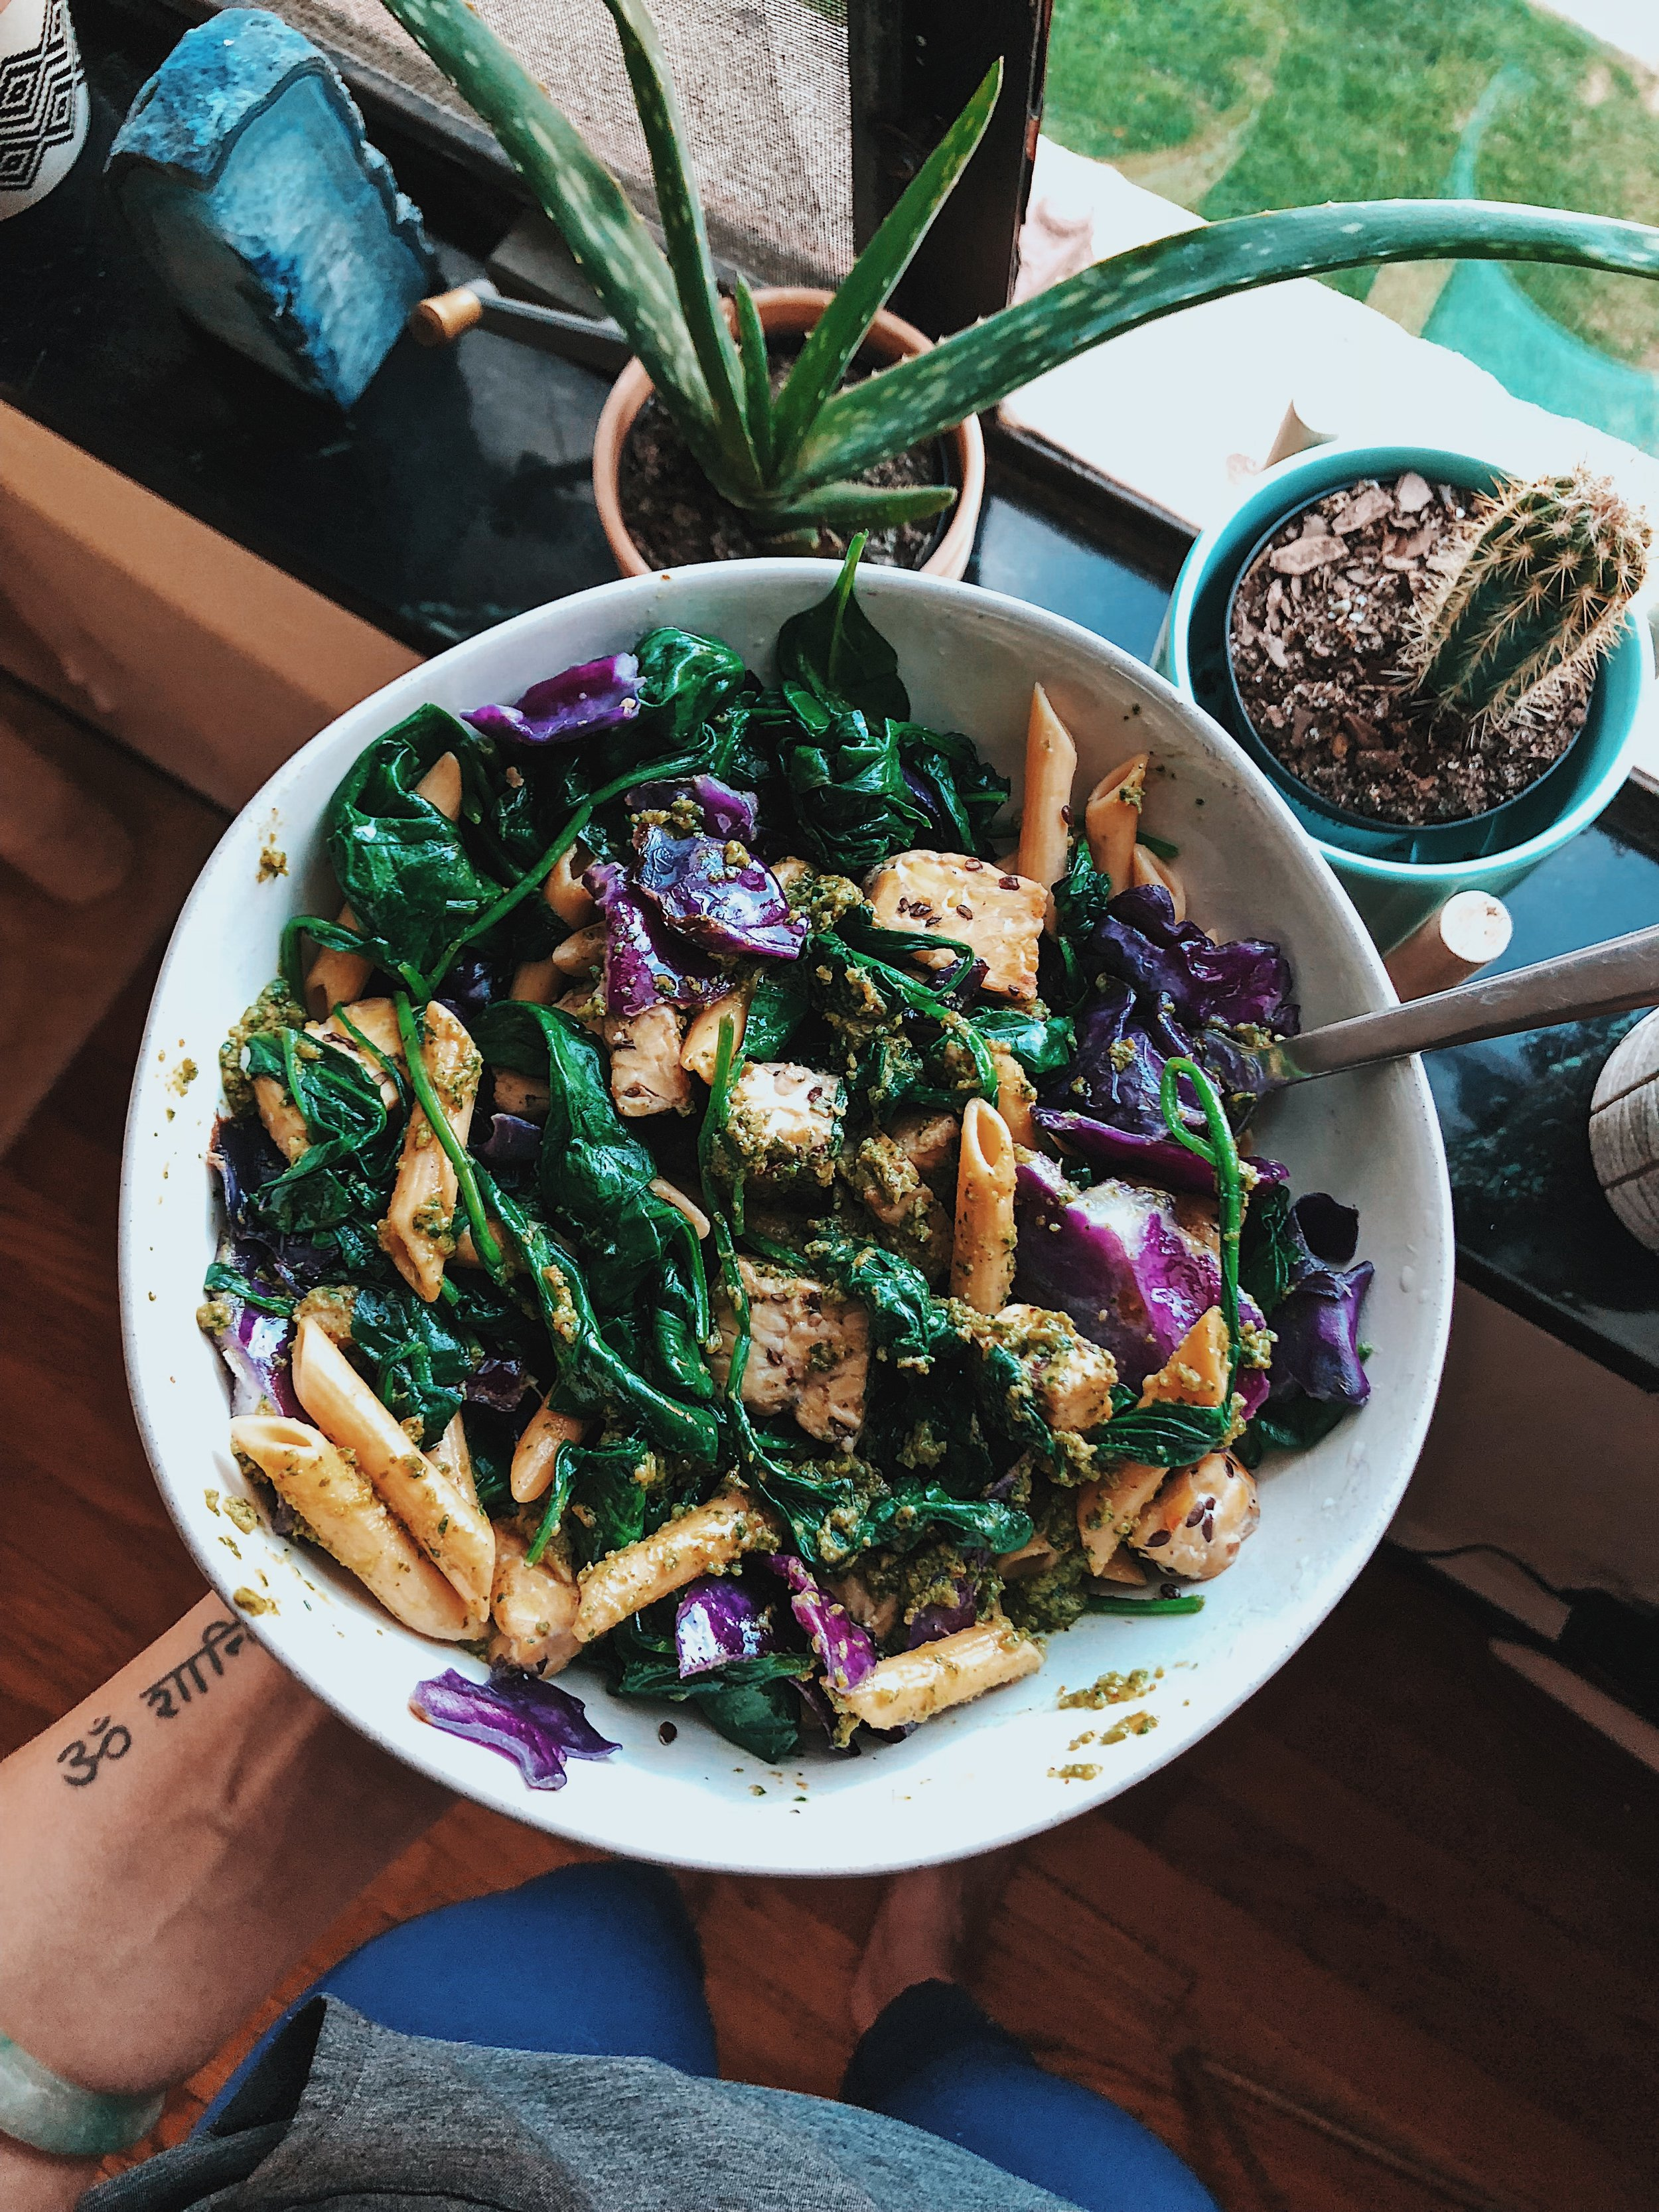 Sautéed spinach, flax tempeh, and purple cabbage with Banza chickpea pasta and walnut pesto - yum!